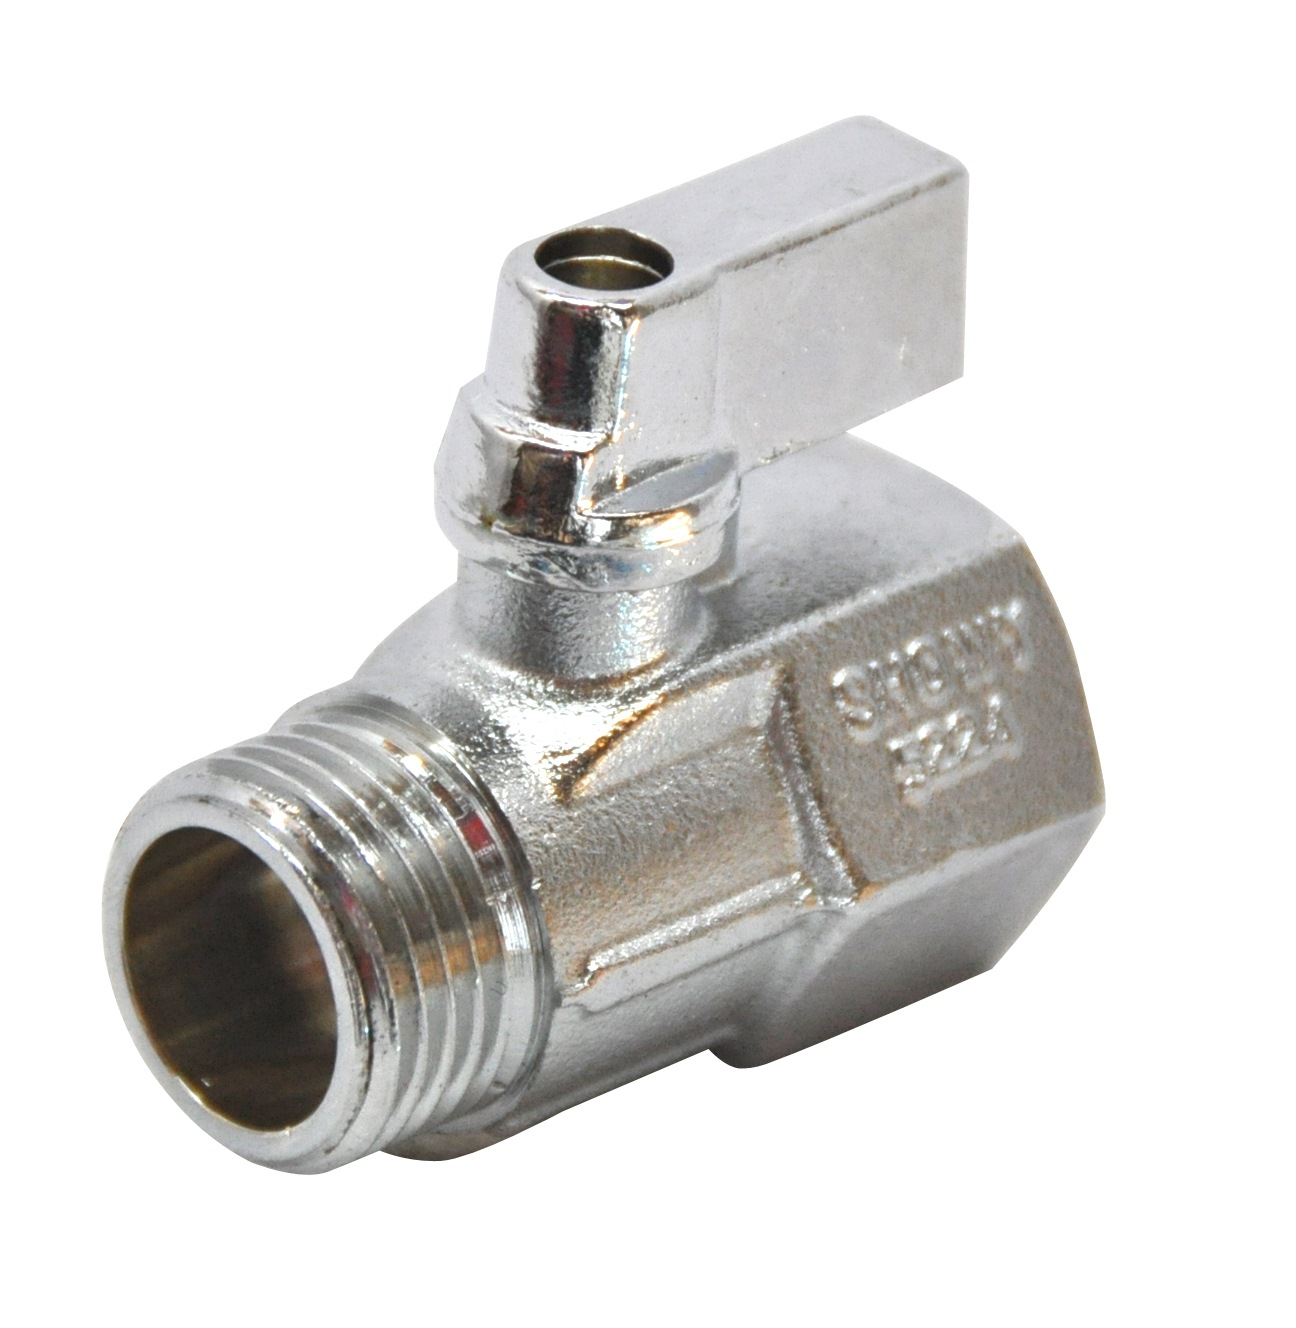 "SHOWY 1/2"" M/F MINI BALL VALVE 5224"